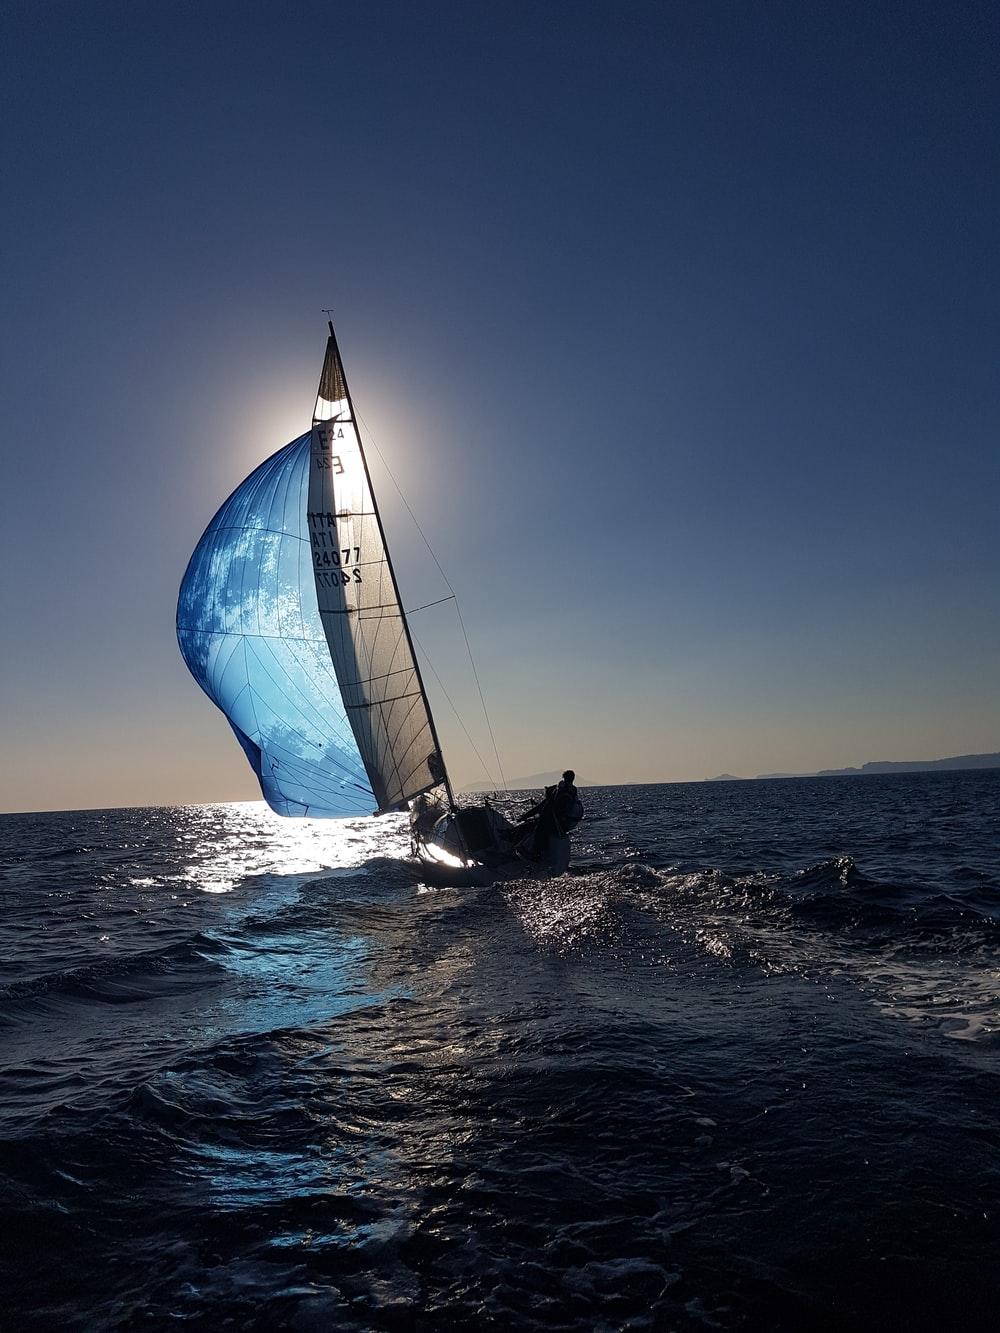 people riding on sailboat on sea during daytime